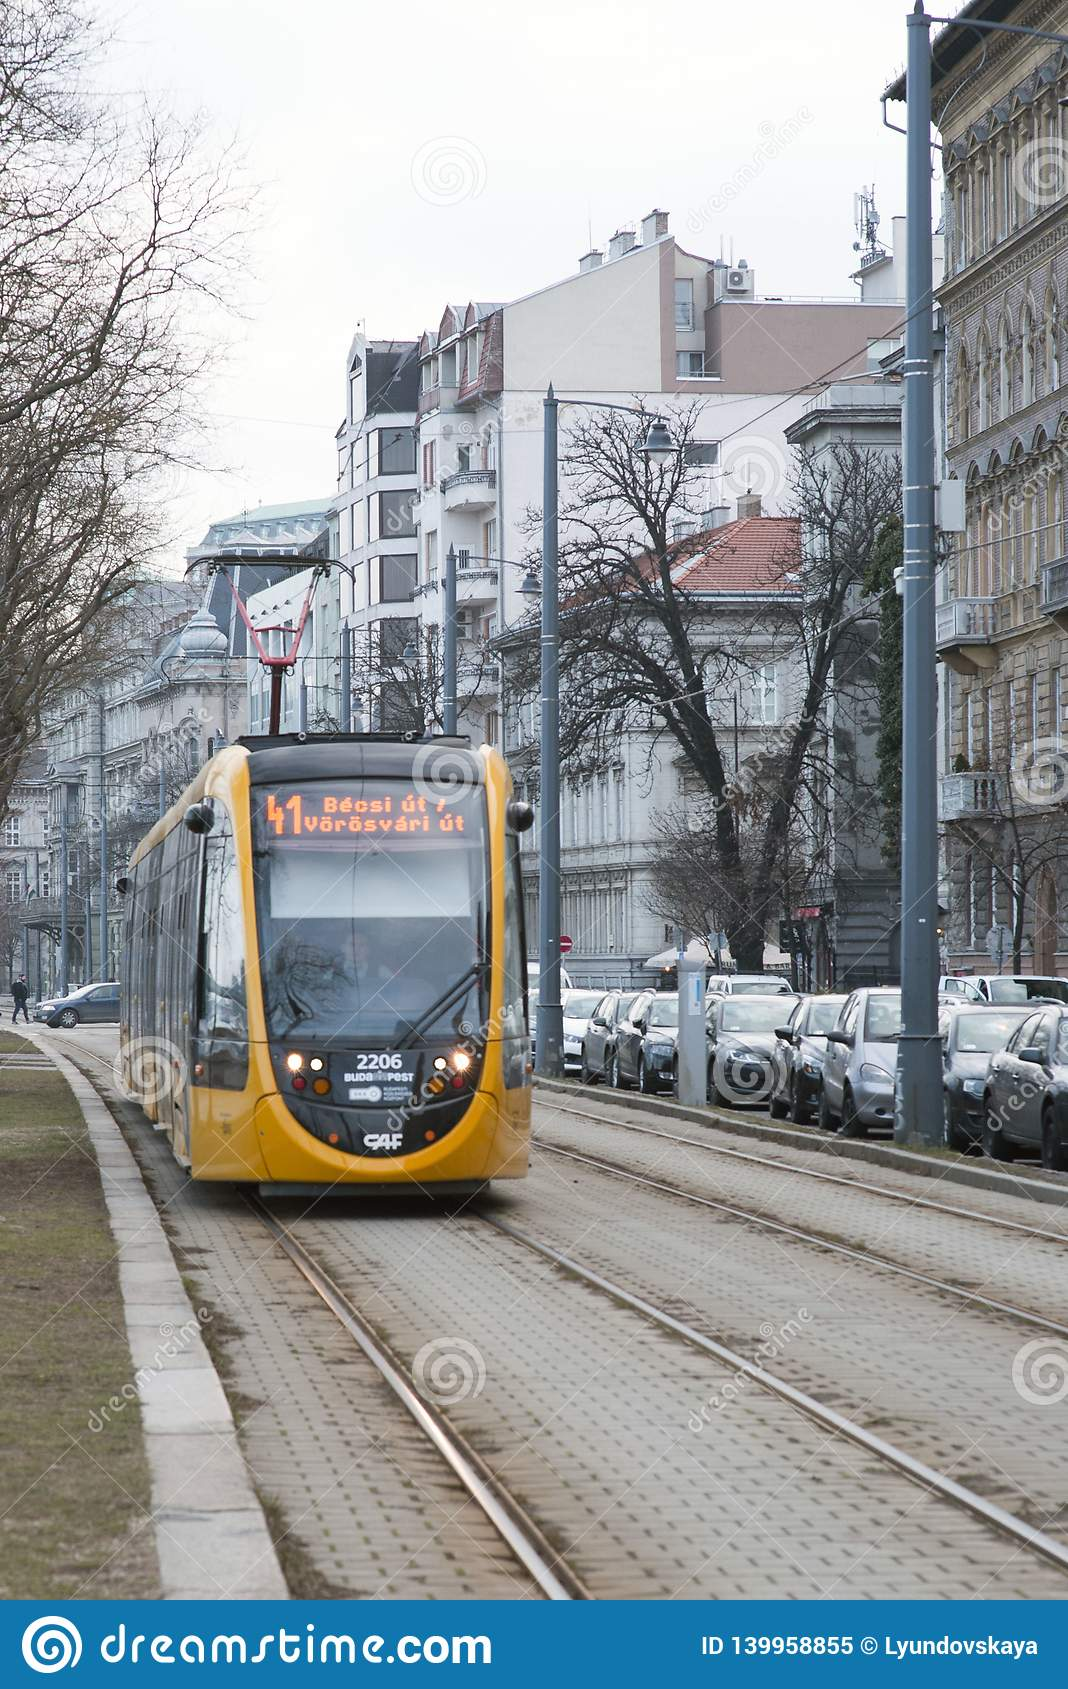 Budapest, Hungary, February 13, 2019. Yellow cars of the Budapest tram arrive at the stop.